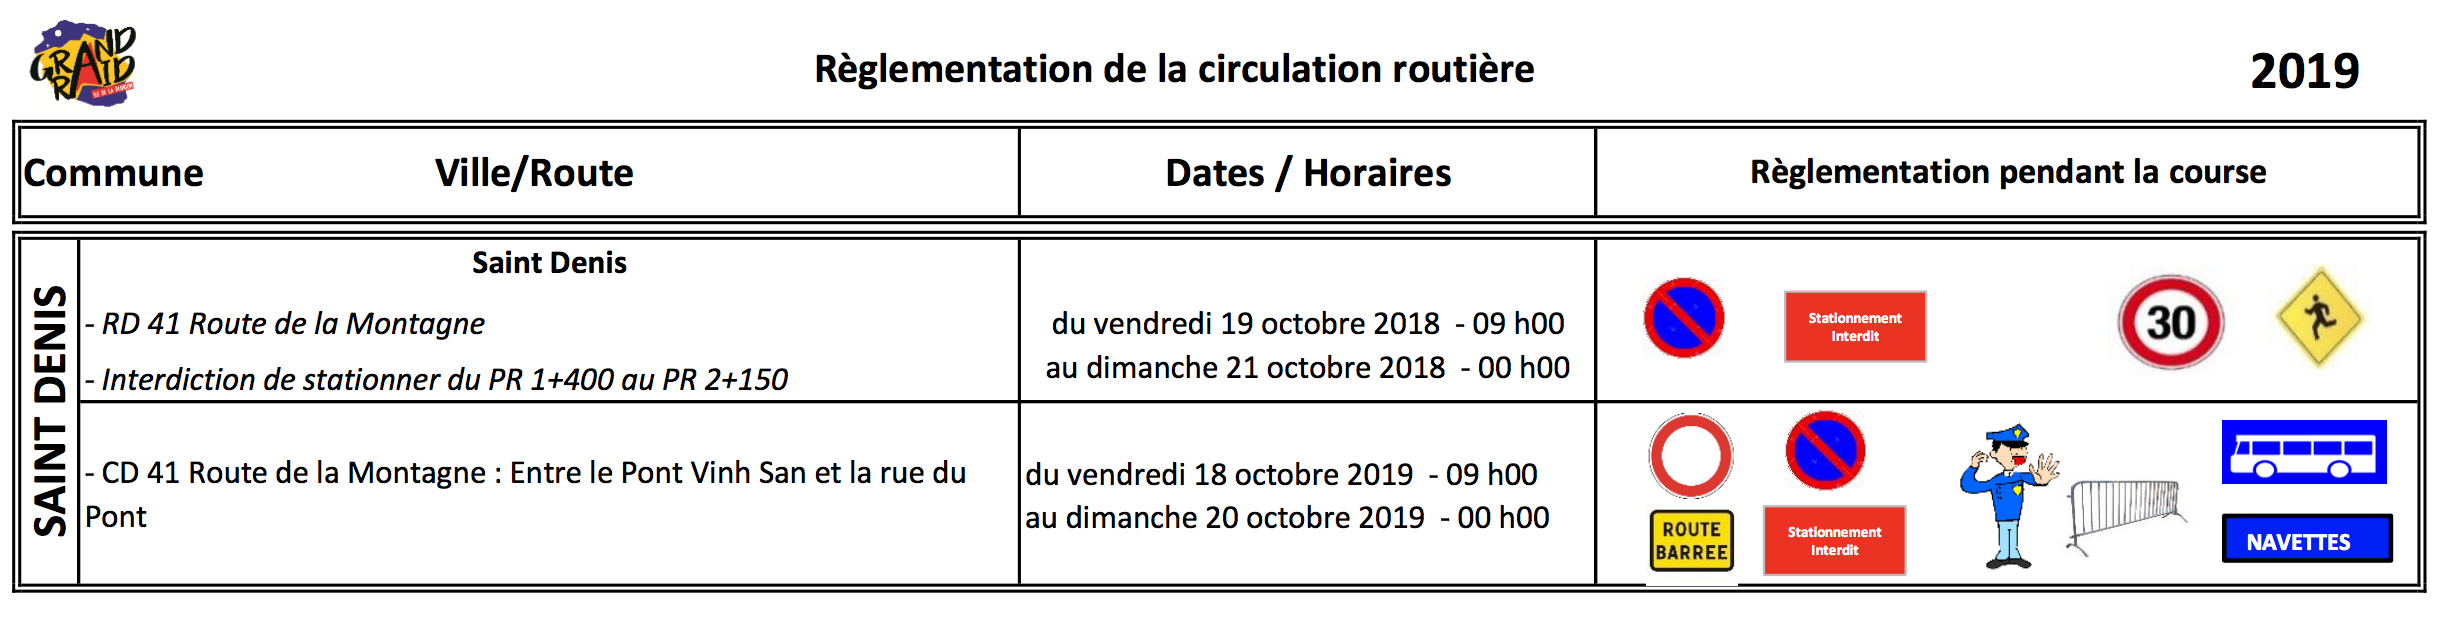 Grand Raid 2019 : Les restrictions de circulation